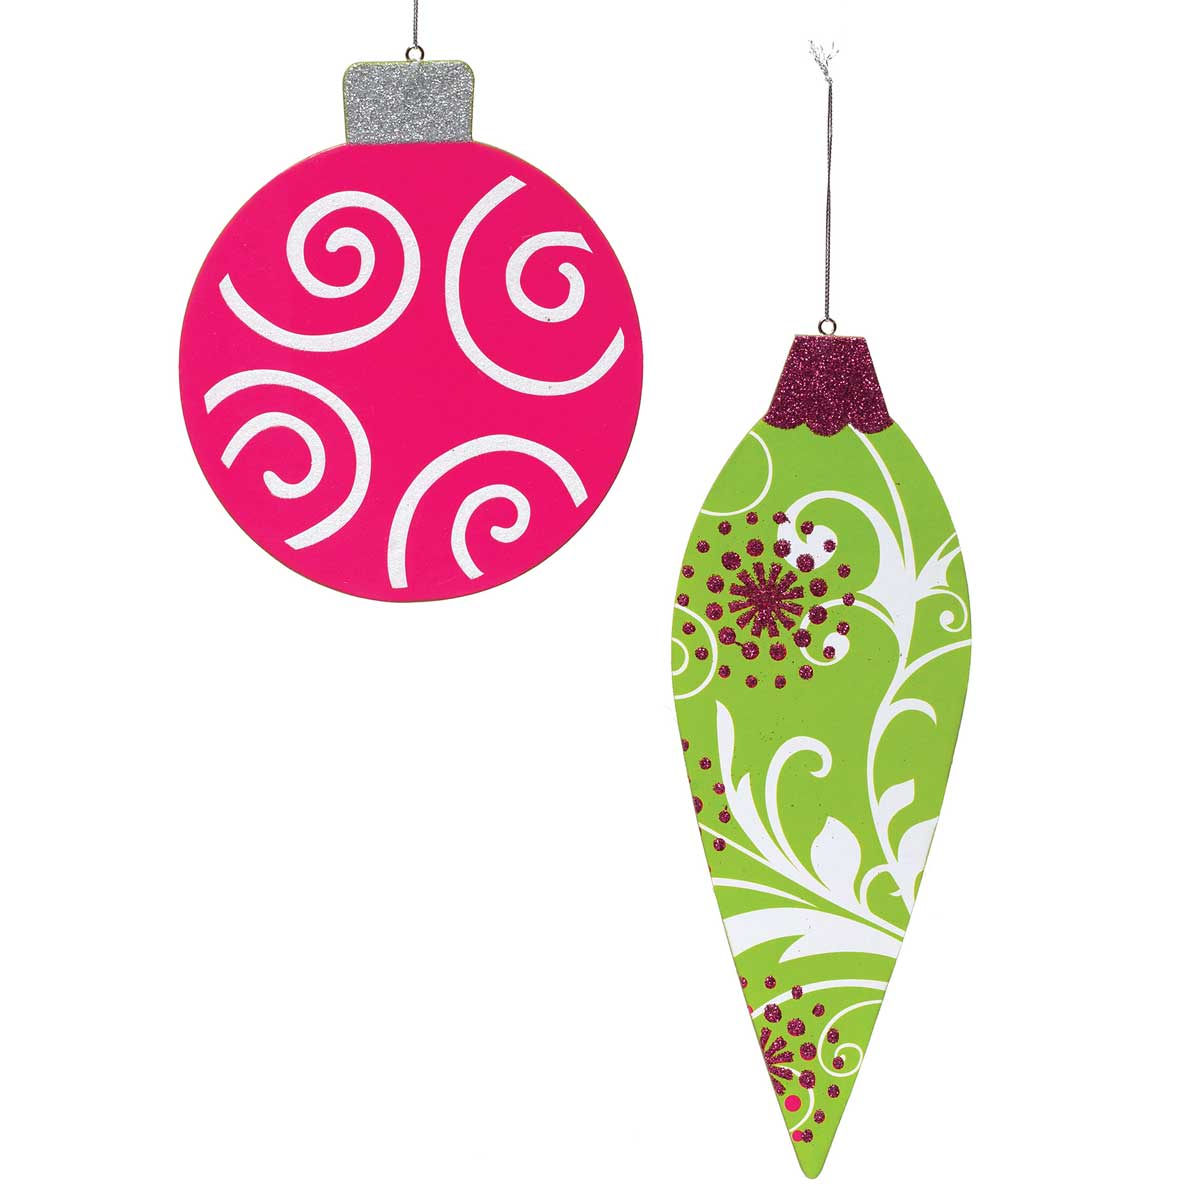 WHIMSY SPARKLE ORNAMENT SET OF 2 BALL/FINIAL MAGENTA/GREEN